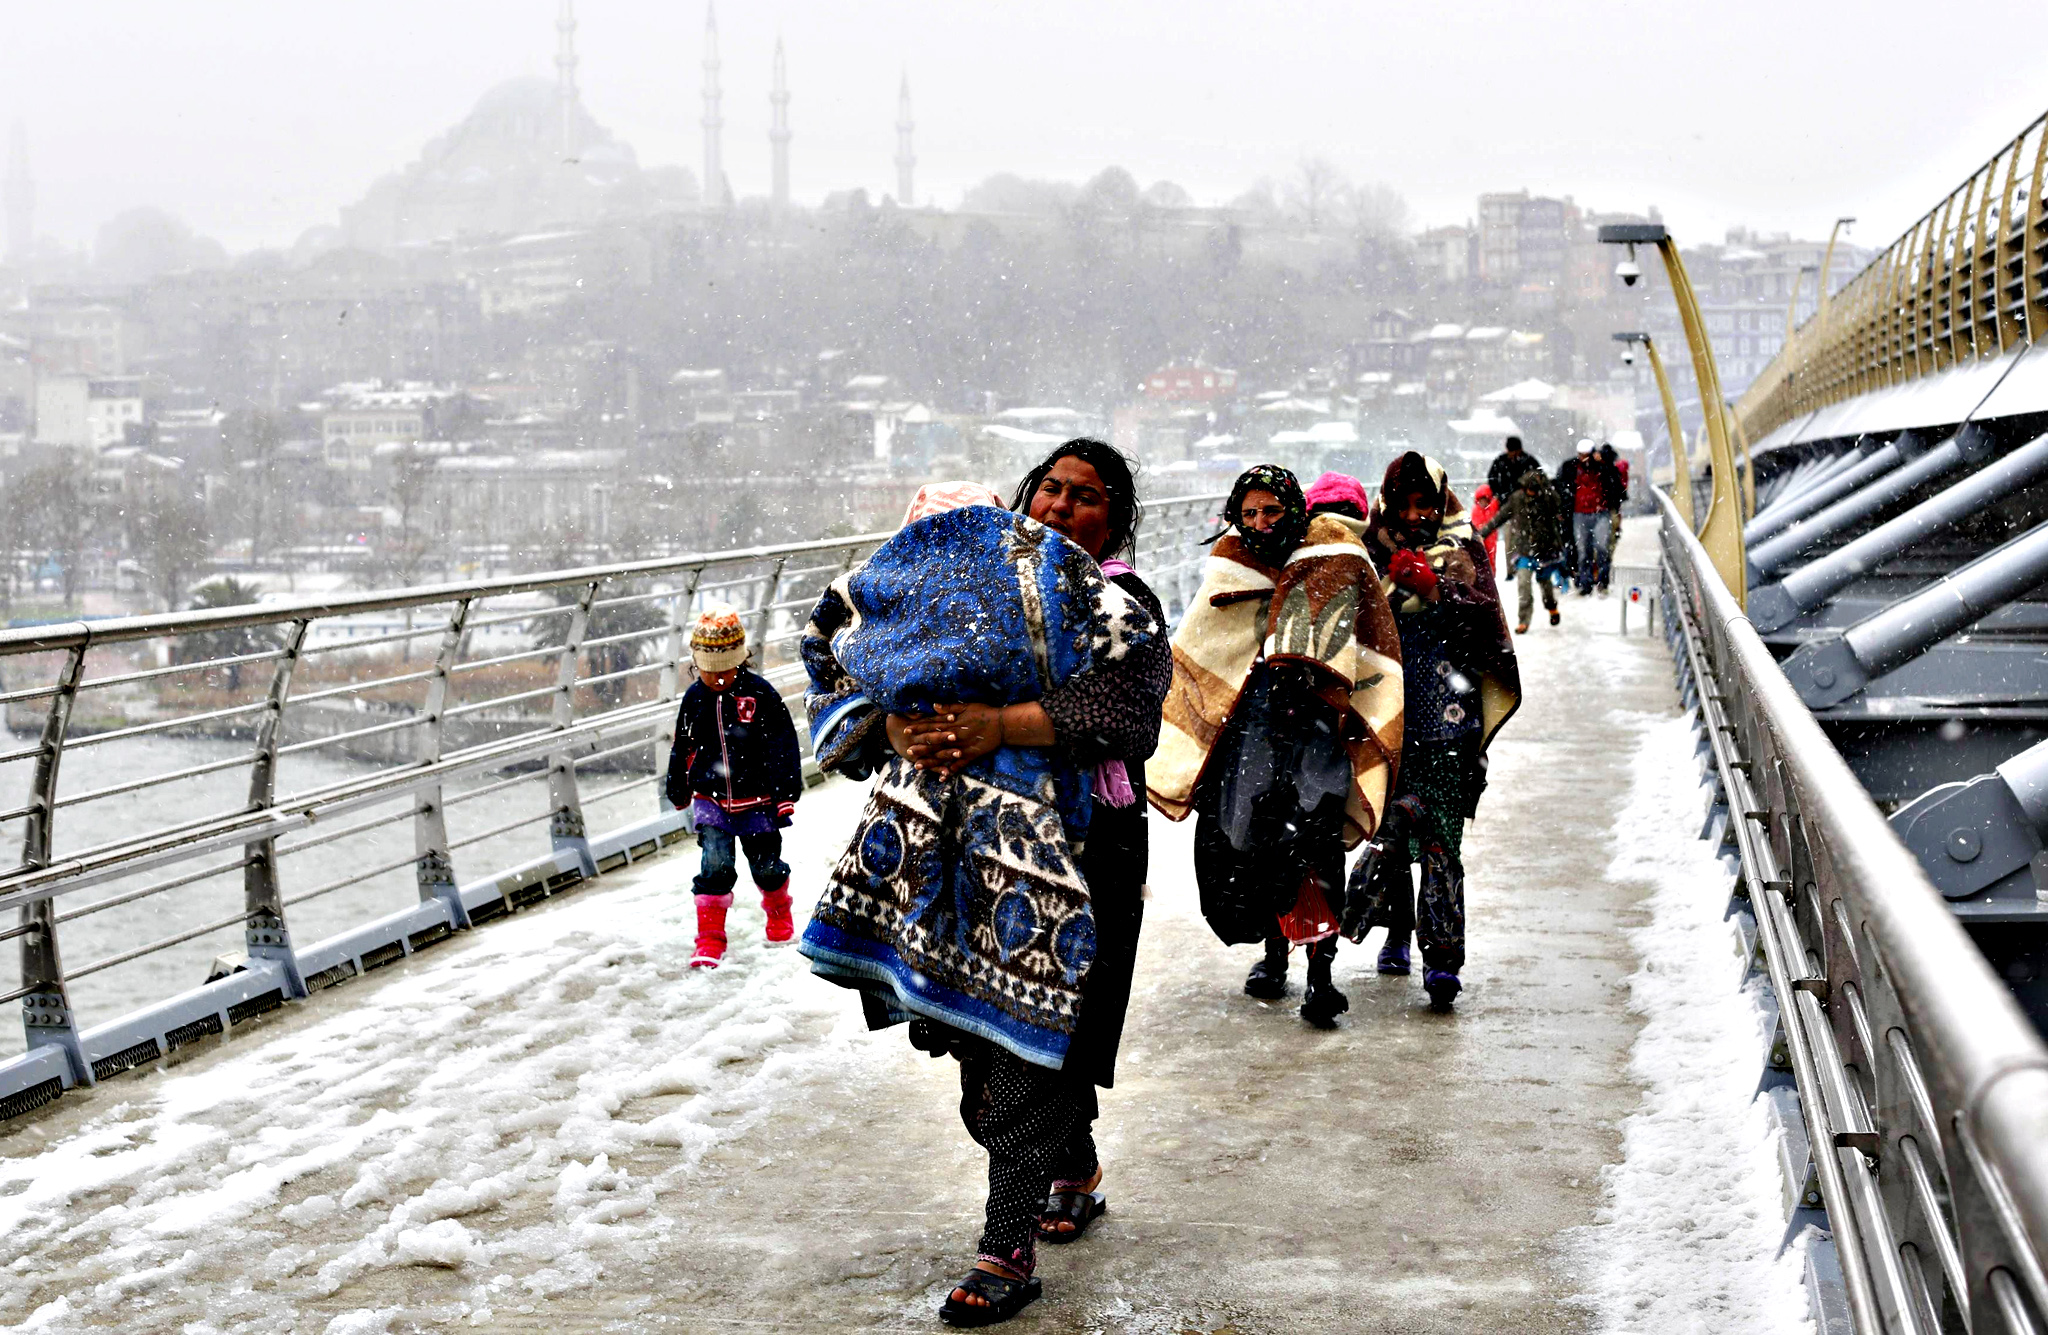 Syrian refugees brave the cold and snow as they walk to a metro station in Istanbul February 11, 2015, at the start of a day's begging. The civil war, which began as a popular uprising against President Bashar al-Assad in March 2011, has killed 200,000 people and turned 3 million more into refugees. At least 3.7 million people have fled Syria's almost four-year conflict and are registered as refugees, mainly in neighbouring states. Jordan hosts 622,000 Syrian refugees, Lebanon 1.16 million, Turkey 1.6 million and Iraq 233,000, UNHCR figures show.